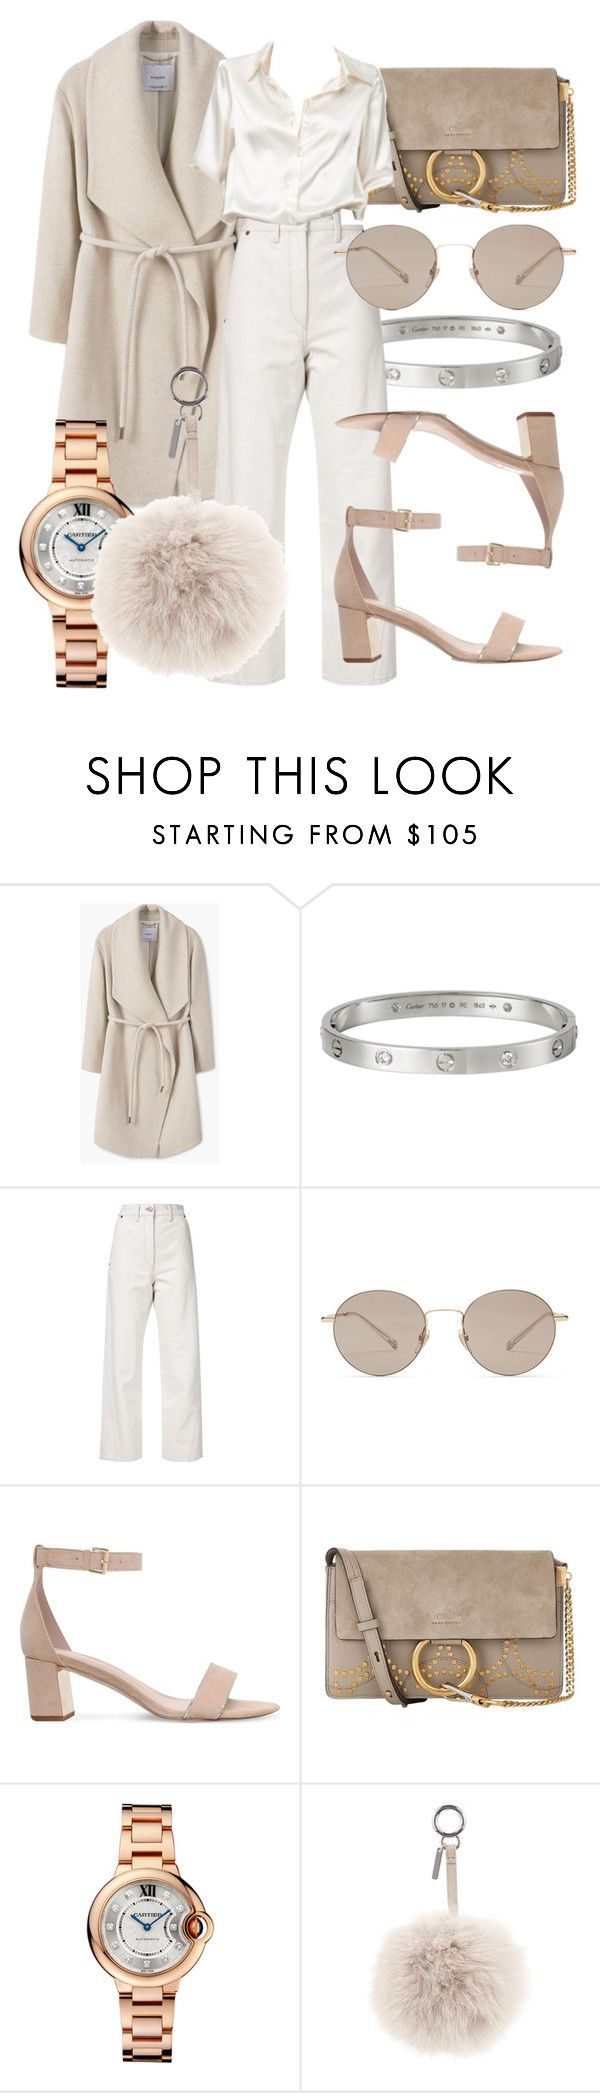 """#Look:#379"" by dollarwomanlux ❤ liked on Polyvore featuring MANGO, Cartier, Lemaire, Gucci, Carvela, Chloé, Brandy Melville and Fendi"